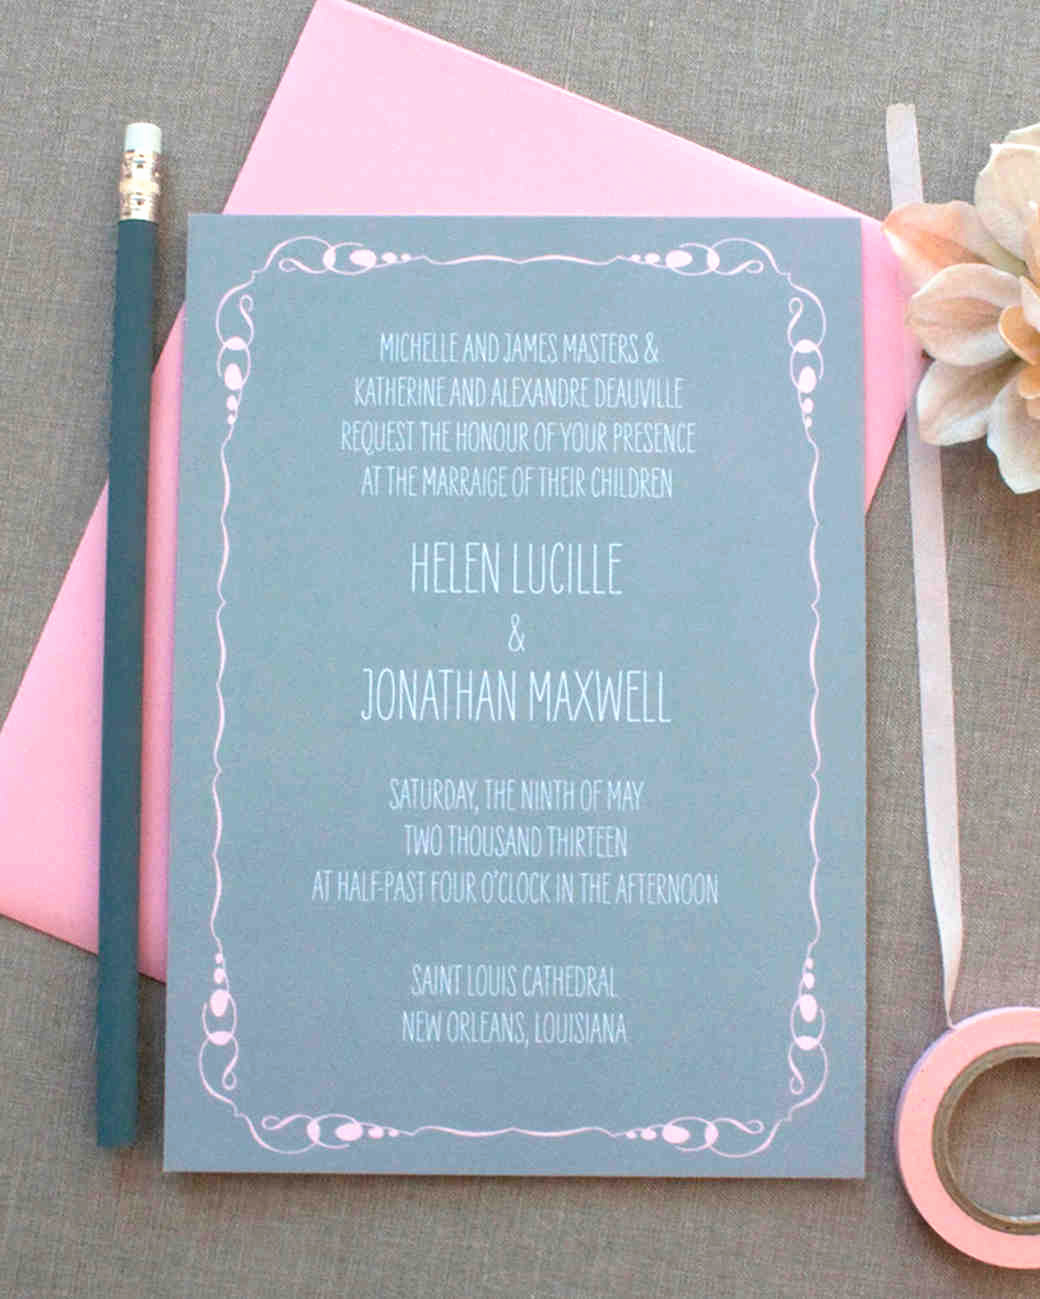 Informal Wedding Invitation Wording Beautiful 8 Details to Include when Wording Your Wedding Invitation